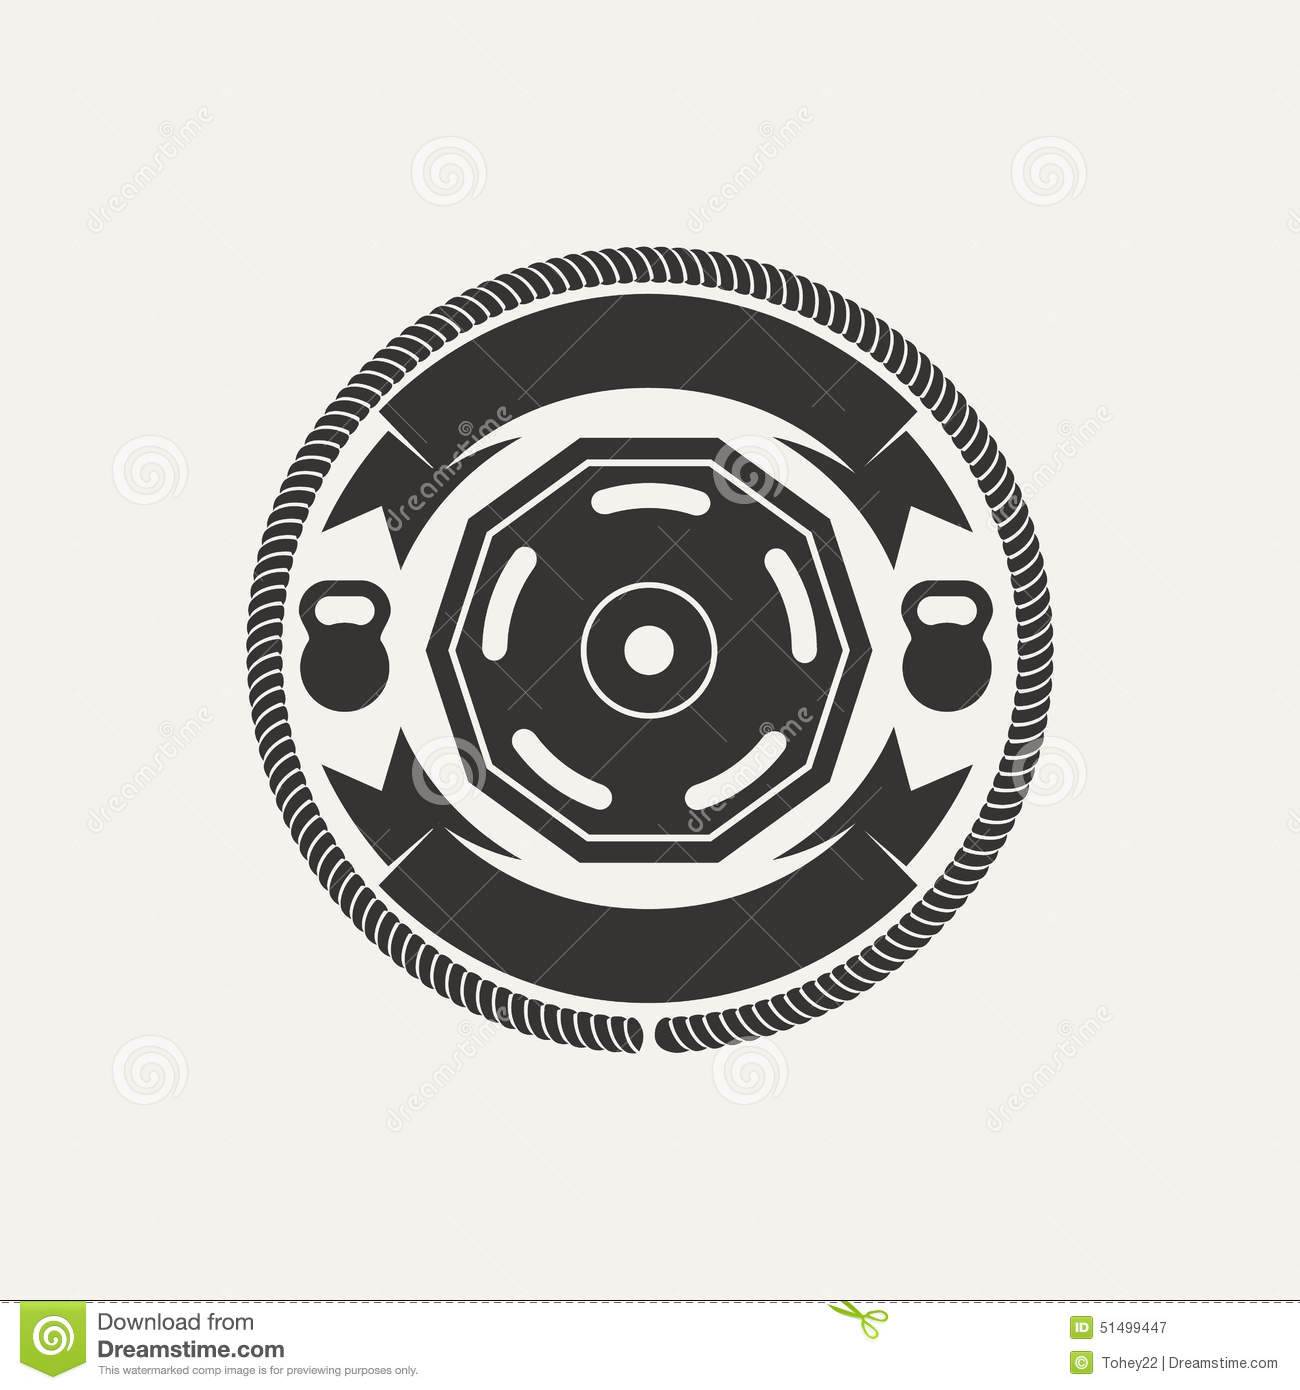 GYM Athletic Logo Stock Vector - Image: 51499447